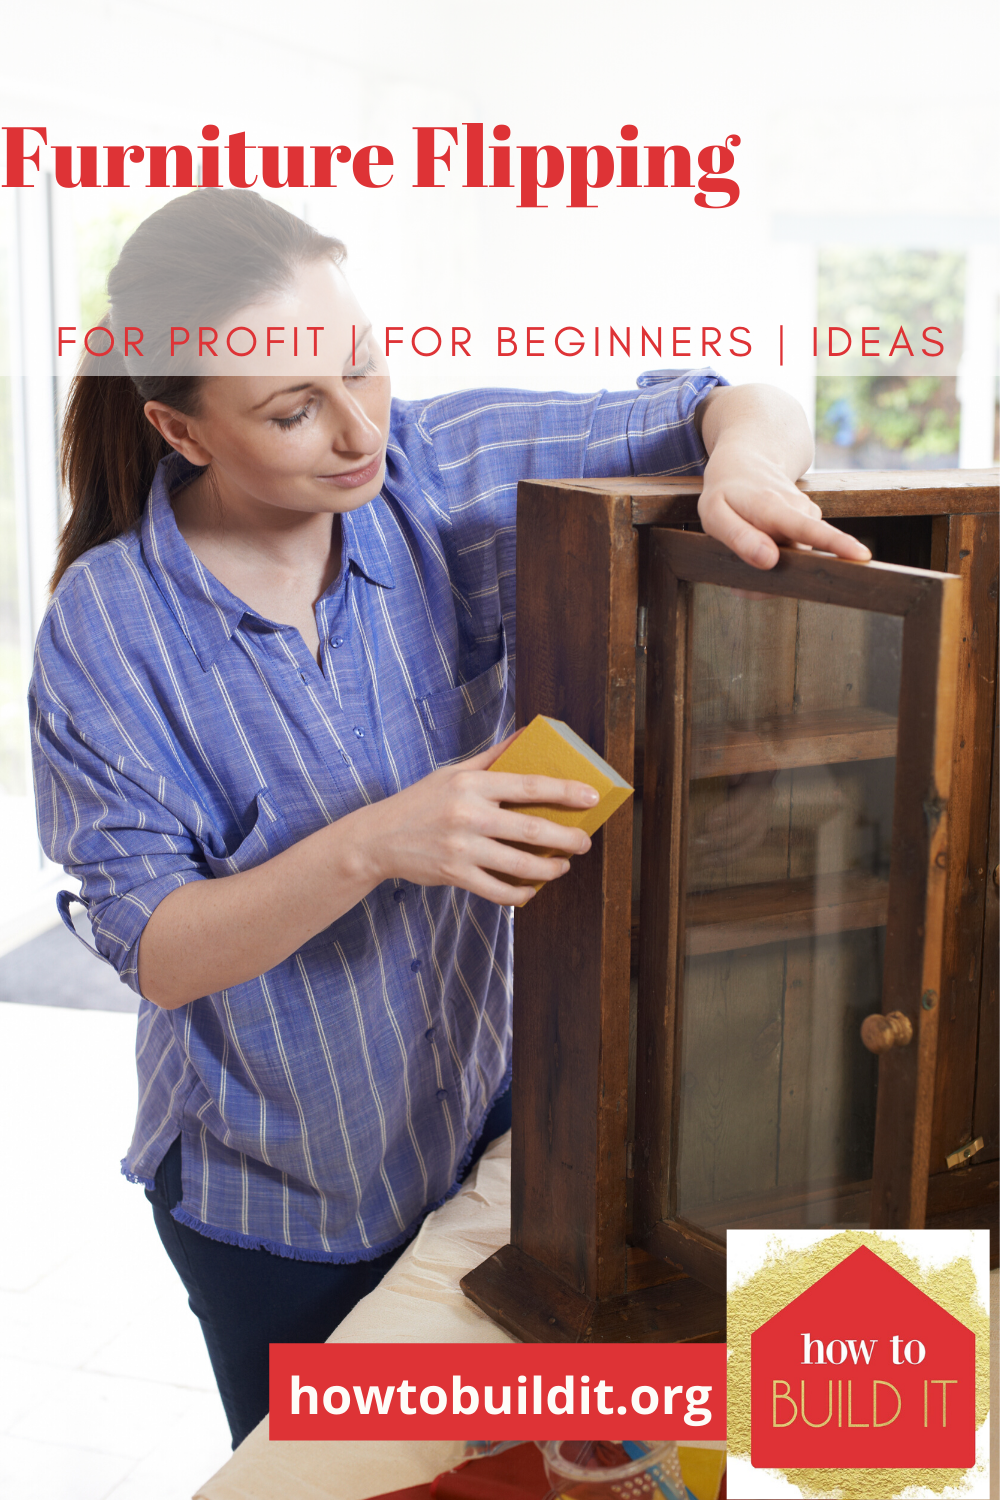 Ever thought of flipping furniture for profit? It's not that hard and can be a great side job for extra cash. Keep reading to learn more and start making money today. #flippingfurniture #howtoflipfurniture #howtobuilditblog